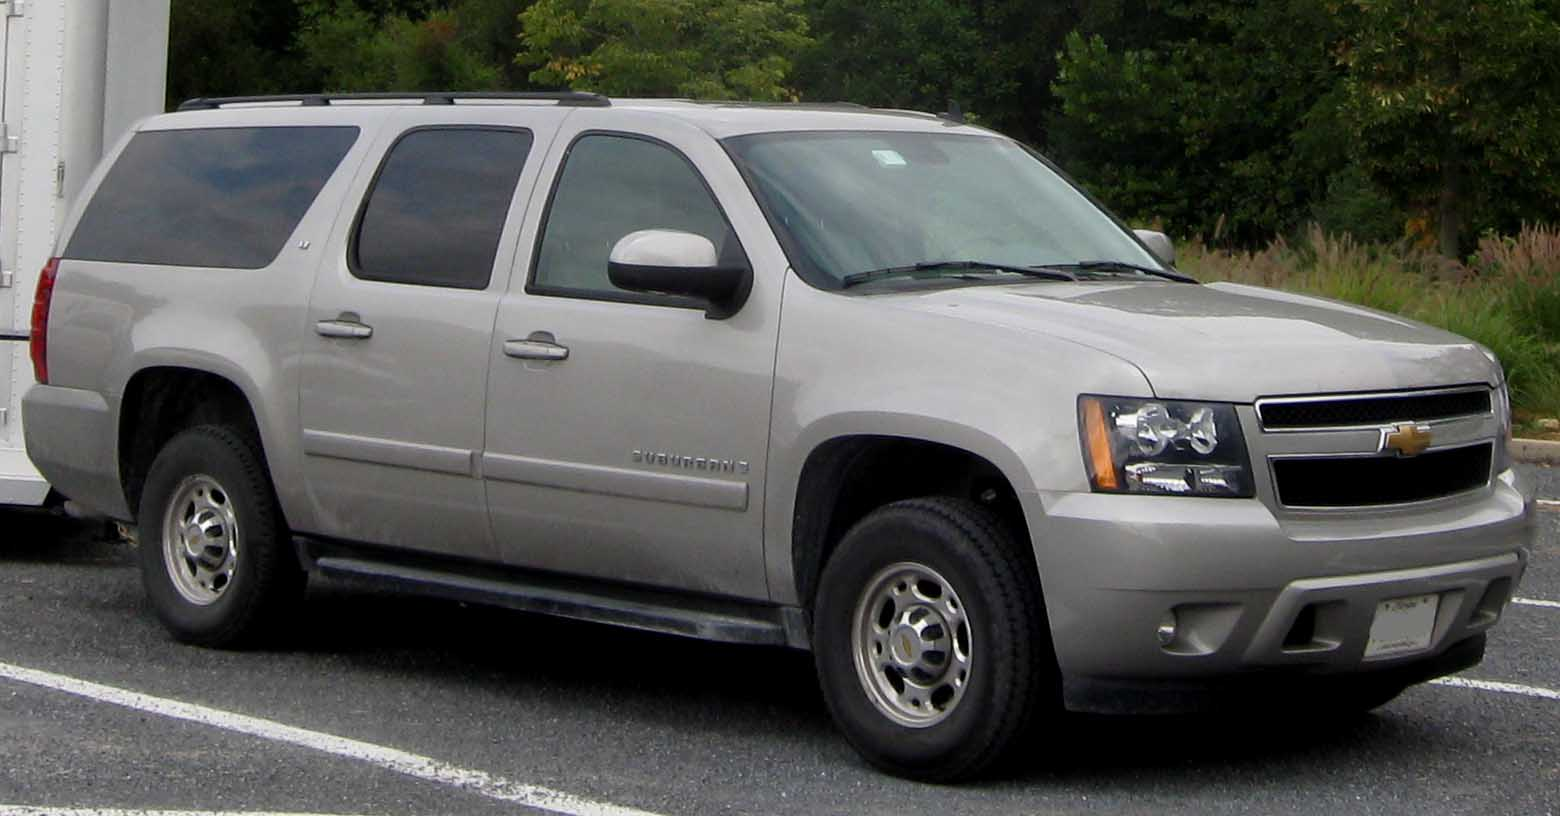 Description Chevrolet Suburban LT GMT900.jpg